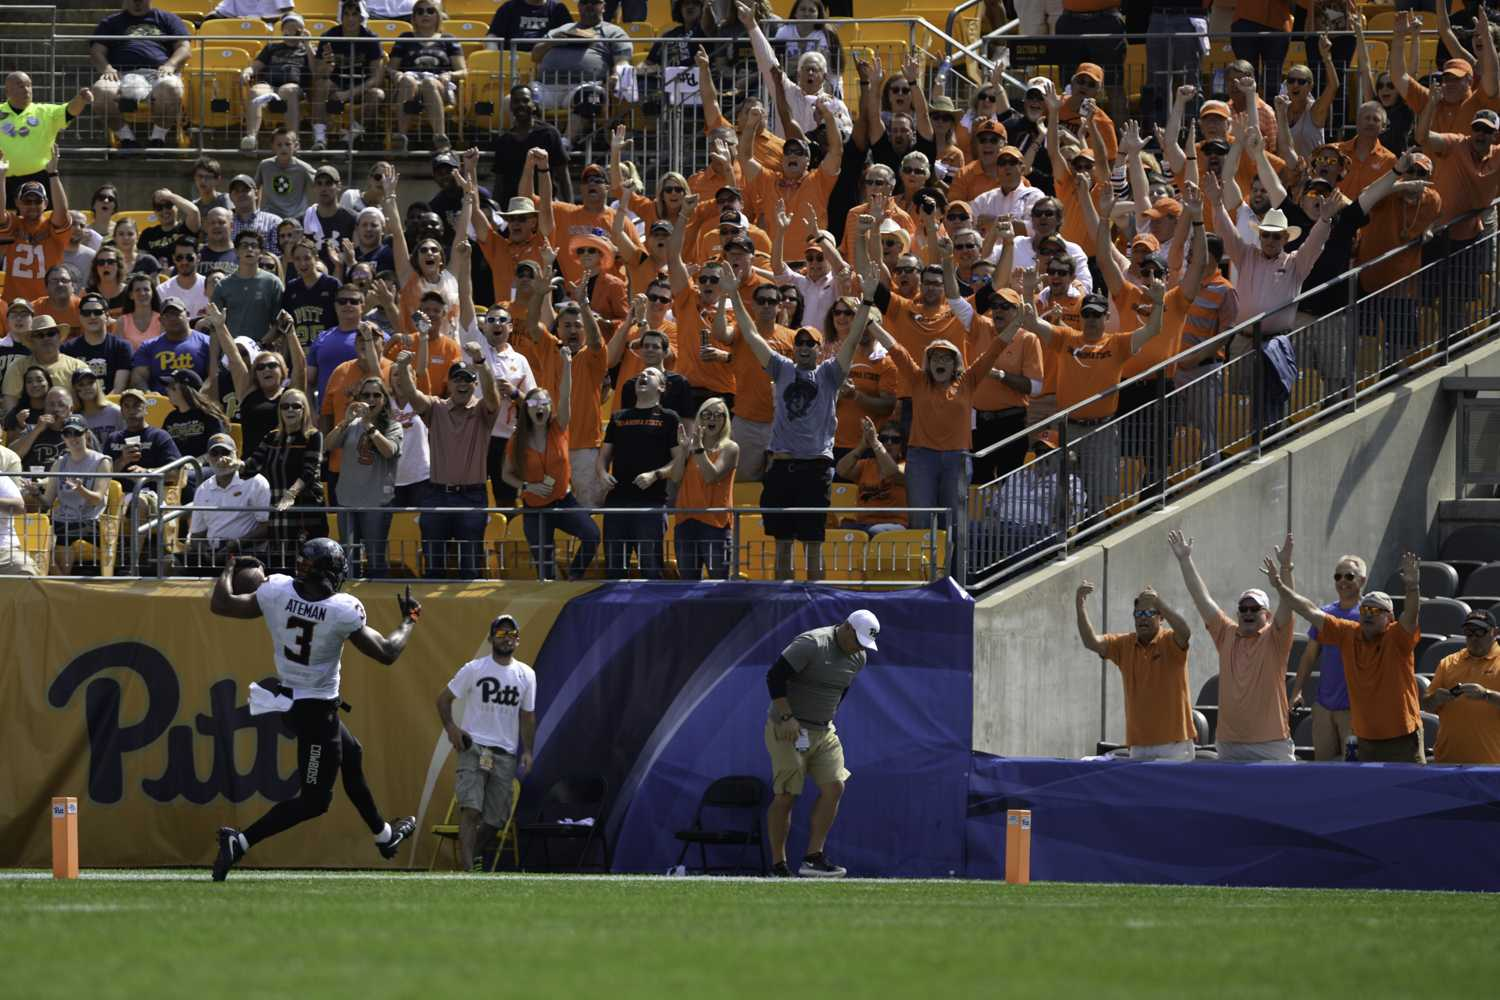 OSU fans cheer as receiver Marcell Ateman scores a touchdown in the first half of Pitt's 59-21 loss. (Photo by John Hamilton)